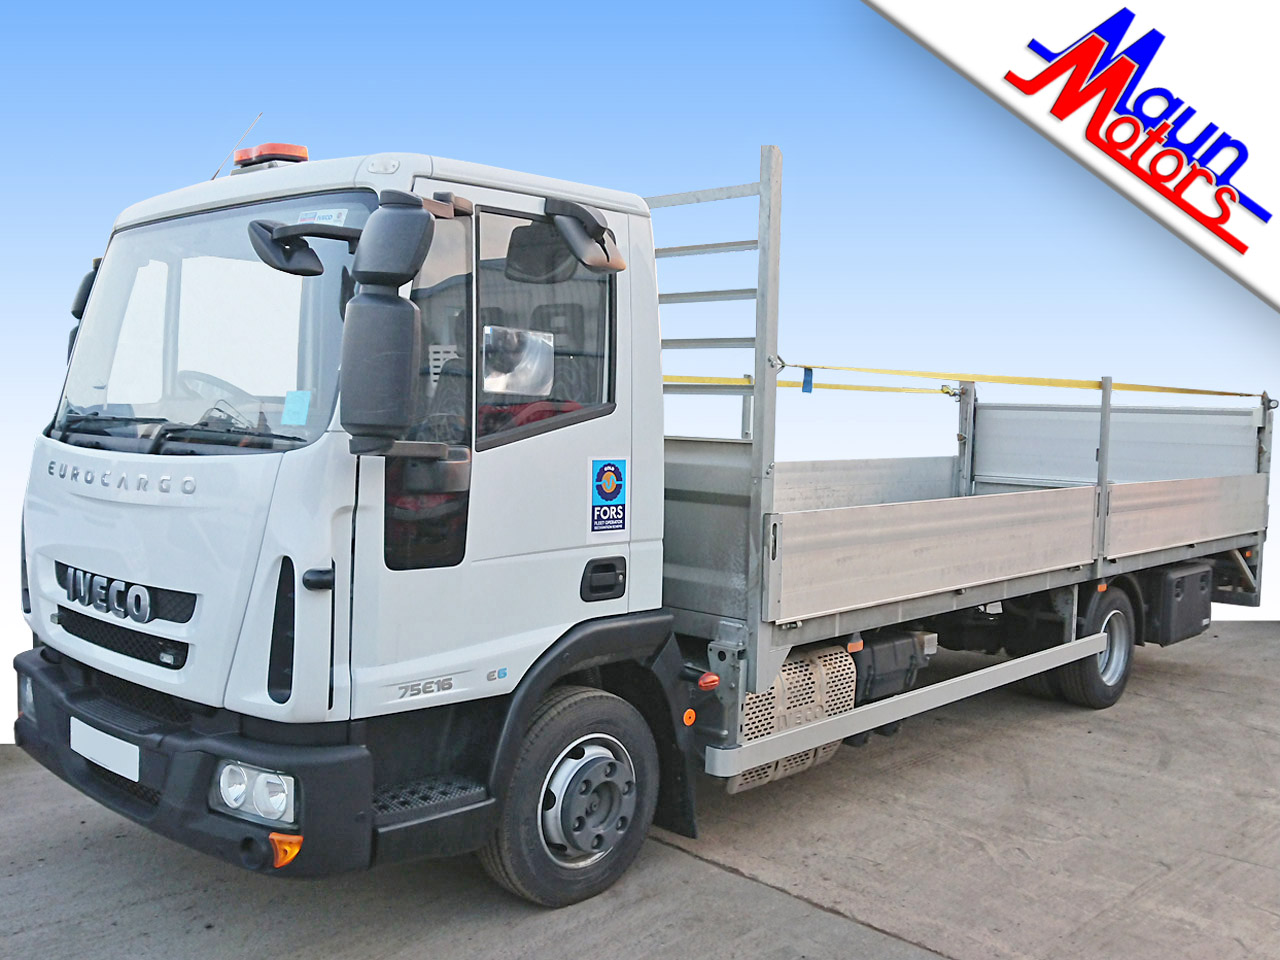 7.5t Dropside Flatbed with Tail Lift - 21 foot / 6.4 m